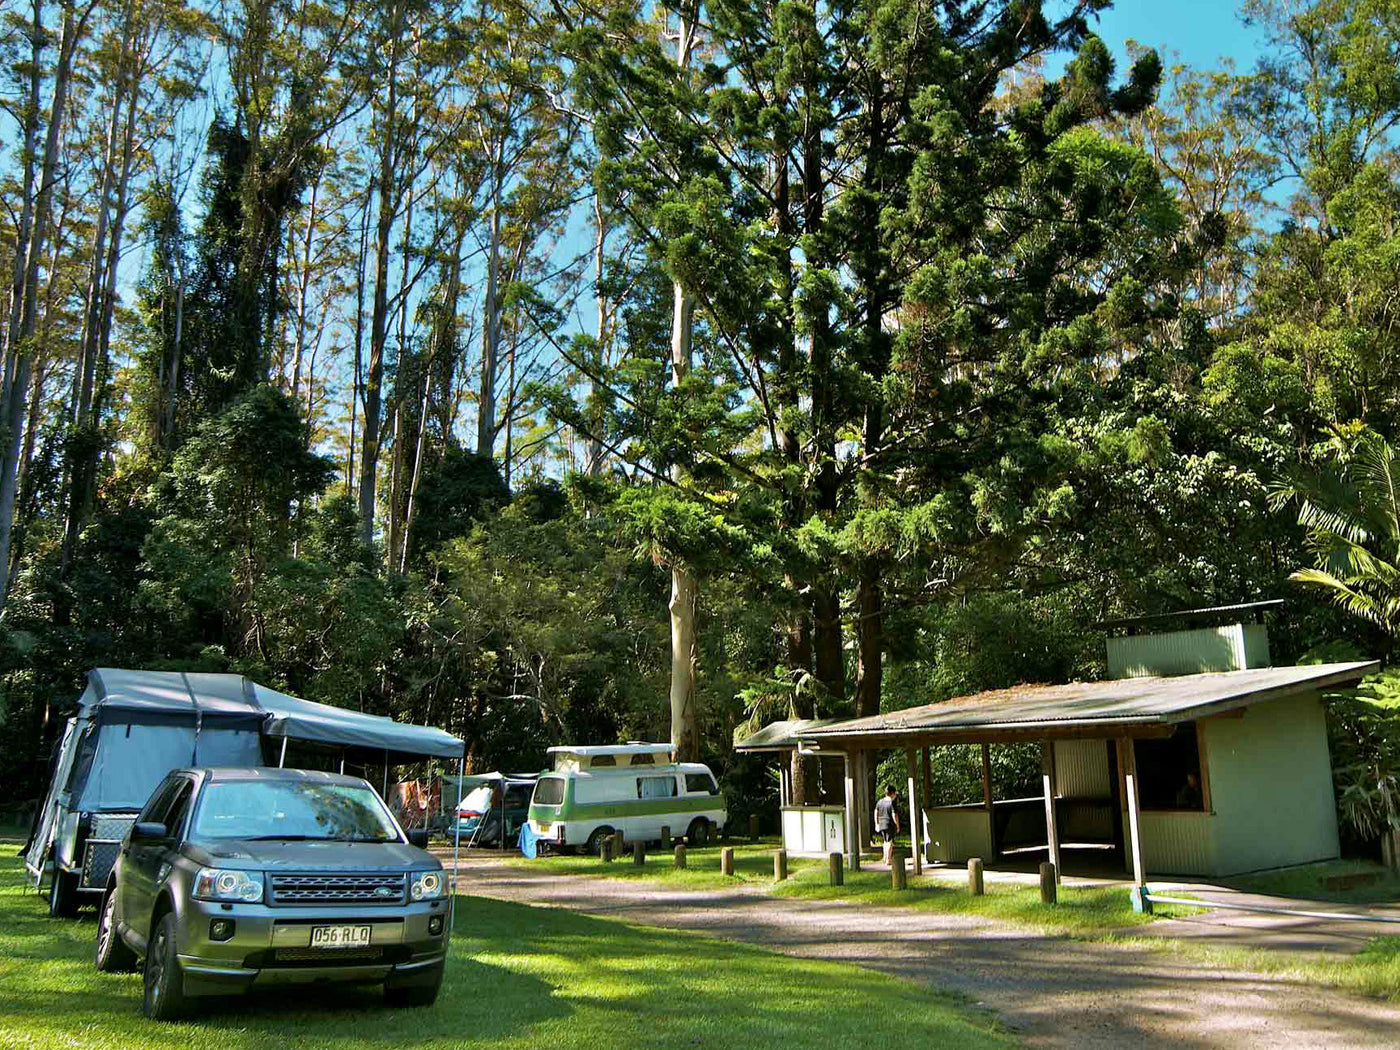 Camping Site Review: Rummery Park Campground, NSW